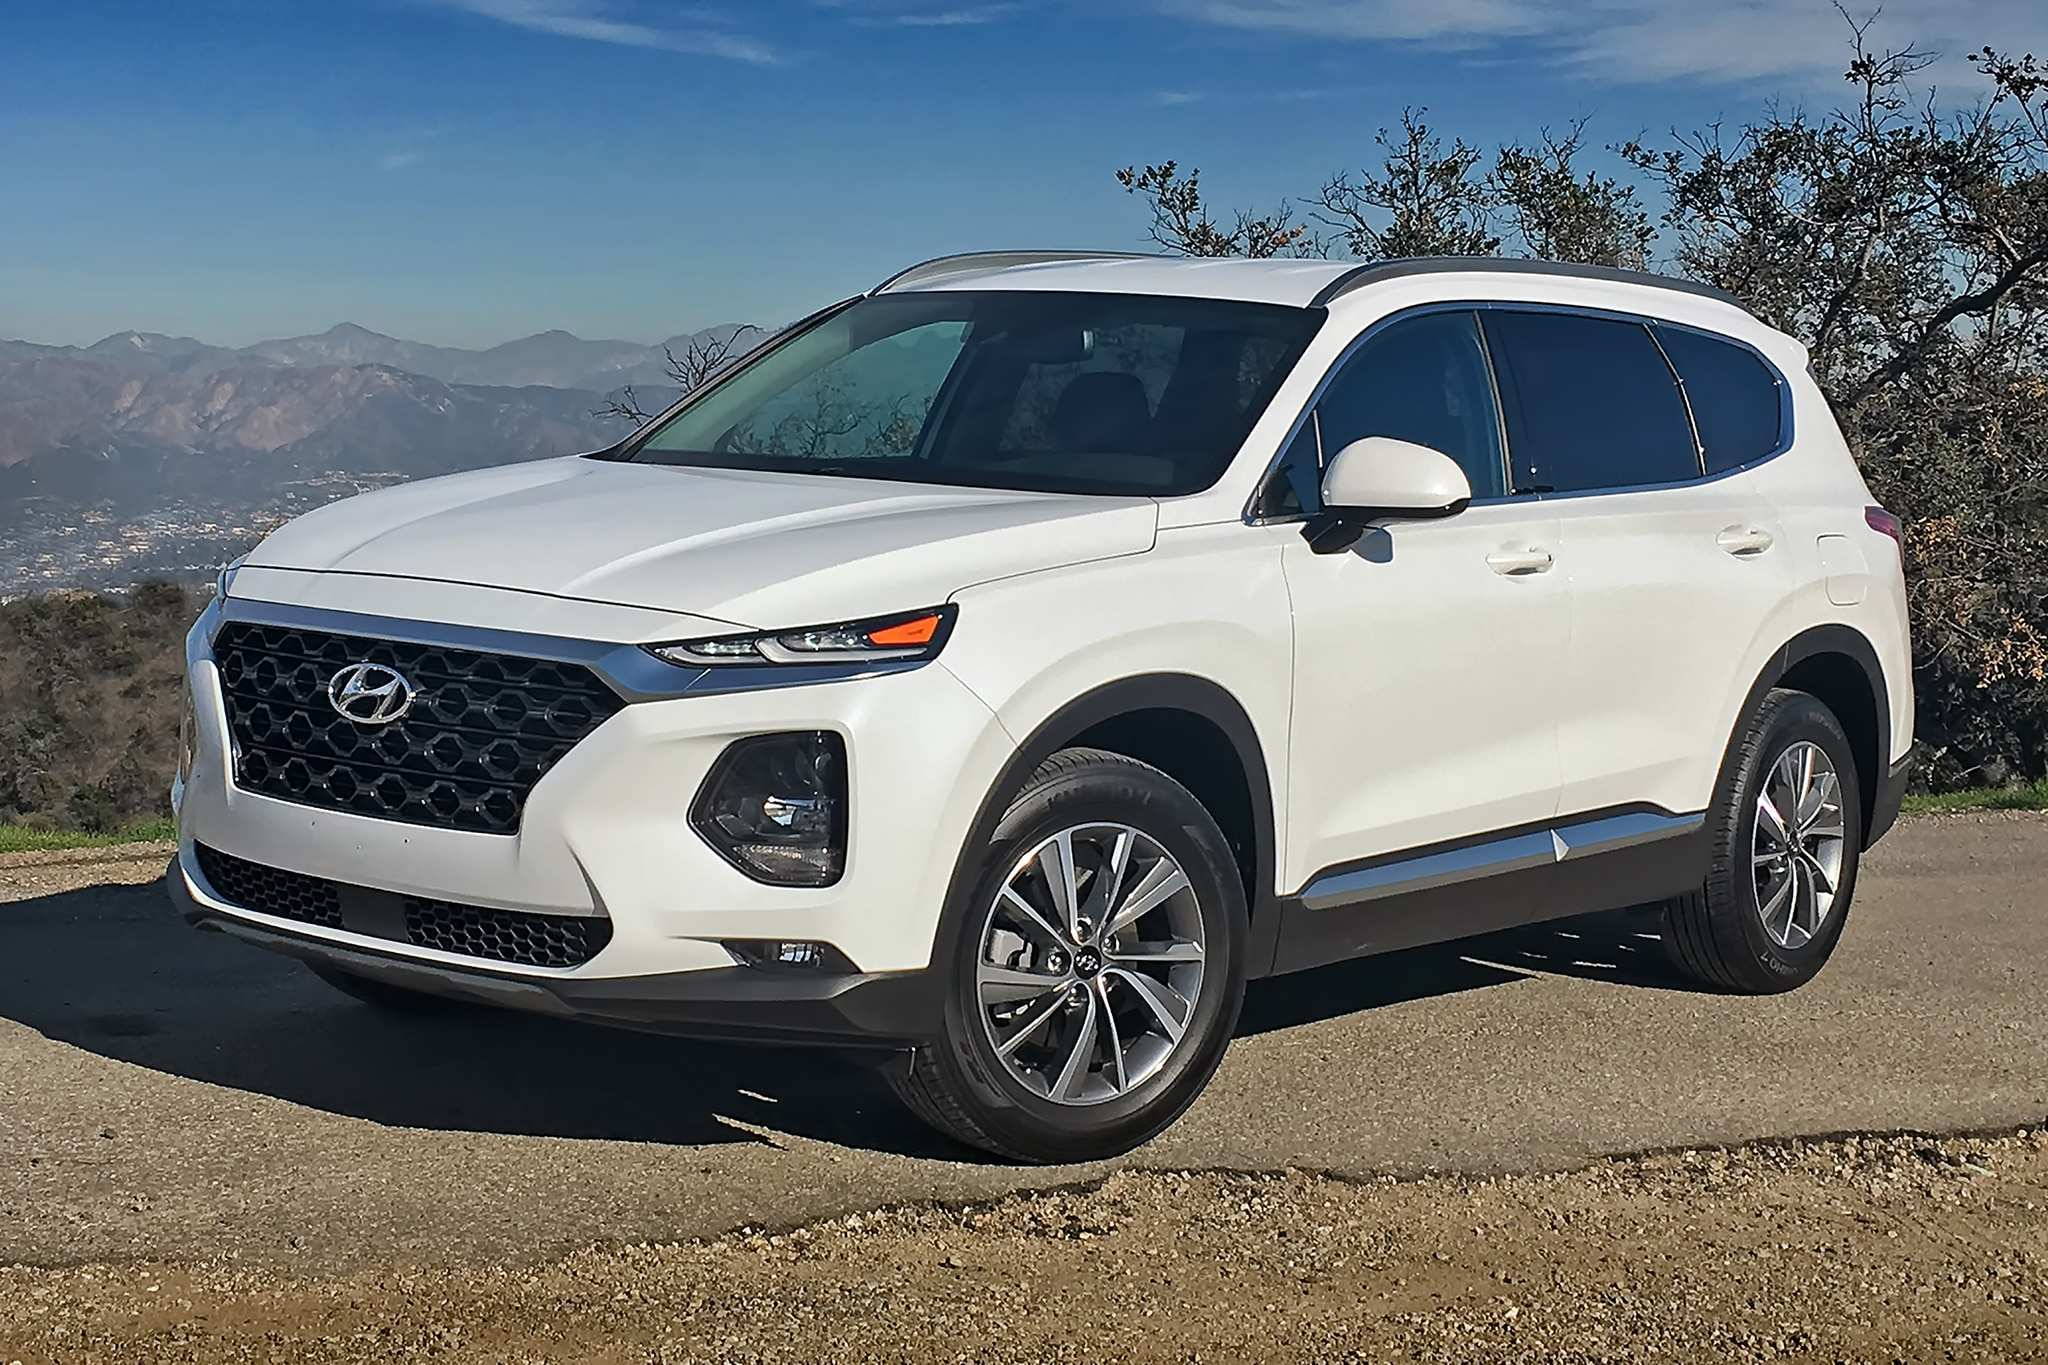 45 New 2019 Hyundai Santa Fe Engine Release Date And Concept